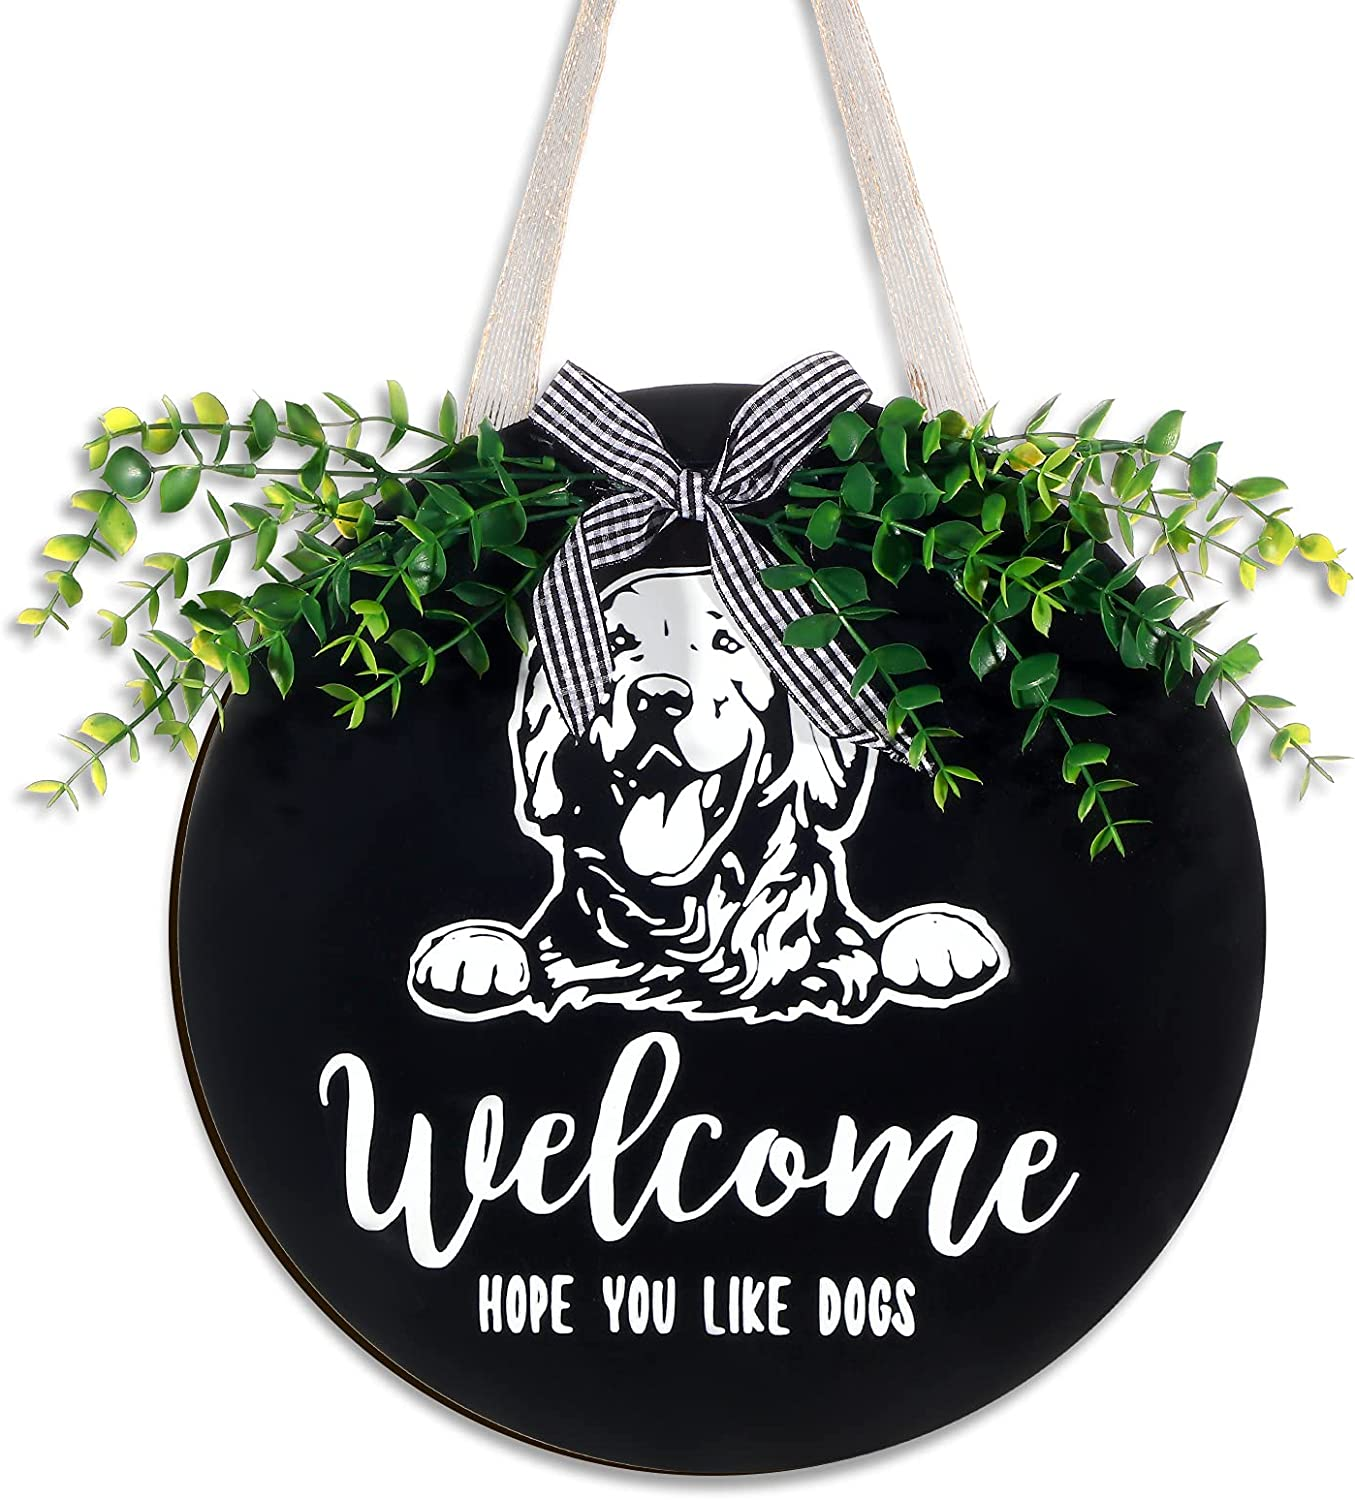 Welcome Sign Front Door Decor Round Wood Hanging Sign Golden Retriever, Hope You Like Dog Hair Sign Farmhouse Porch Decoration for Home Outdoor Indoor, Black Golden Retriever Welcome Sign